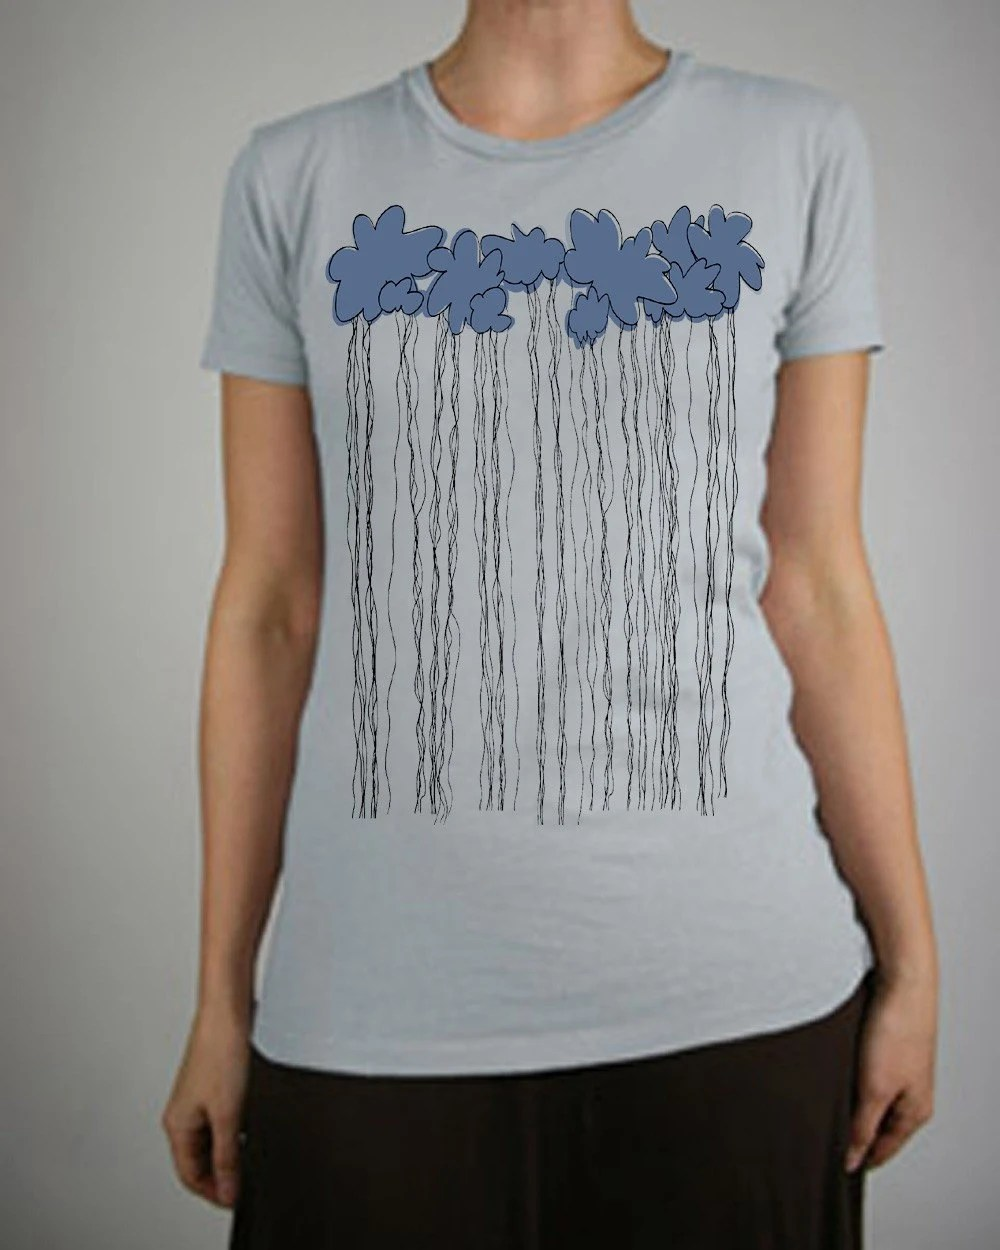 Afternoon Shower Crew Neck T Shirt